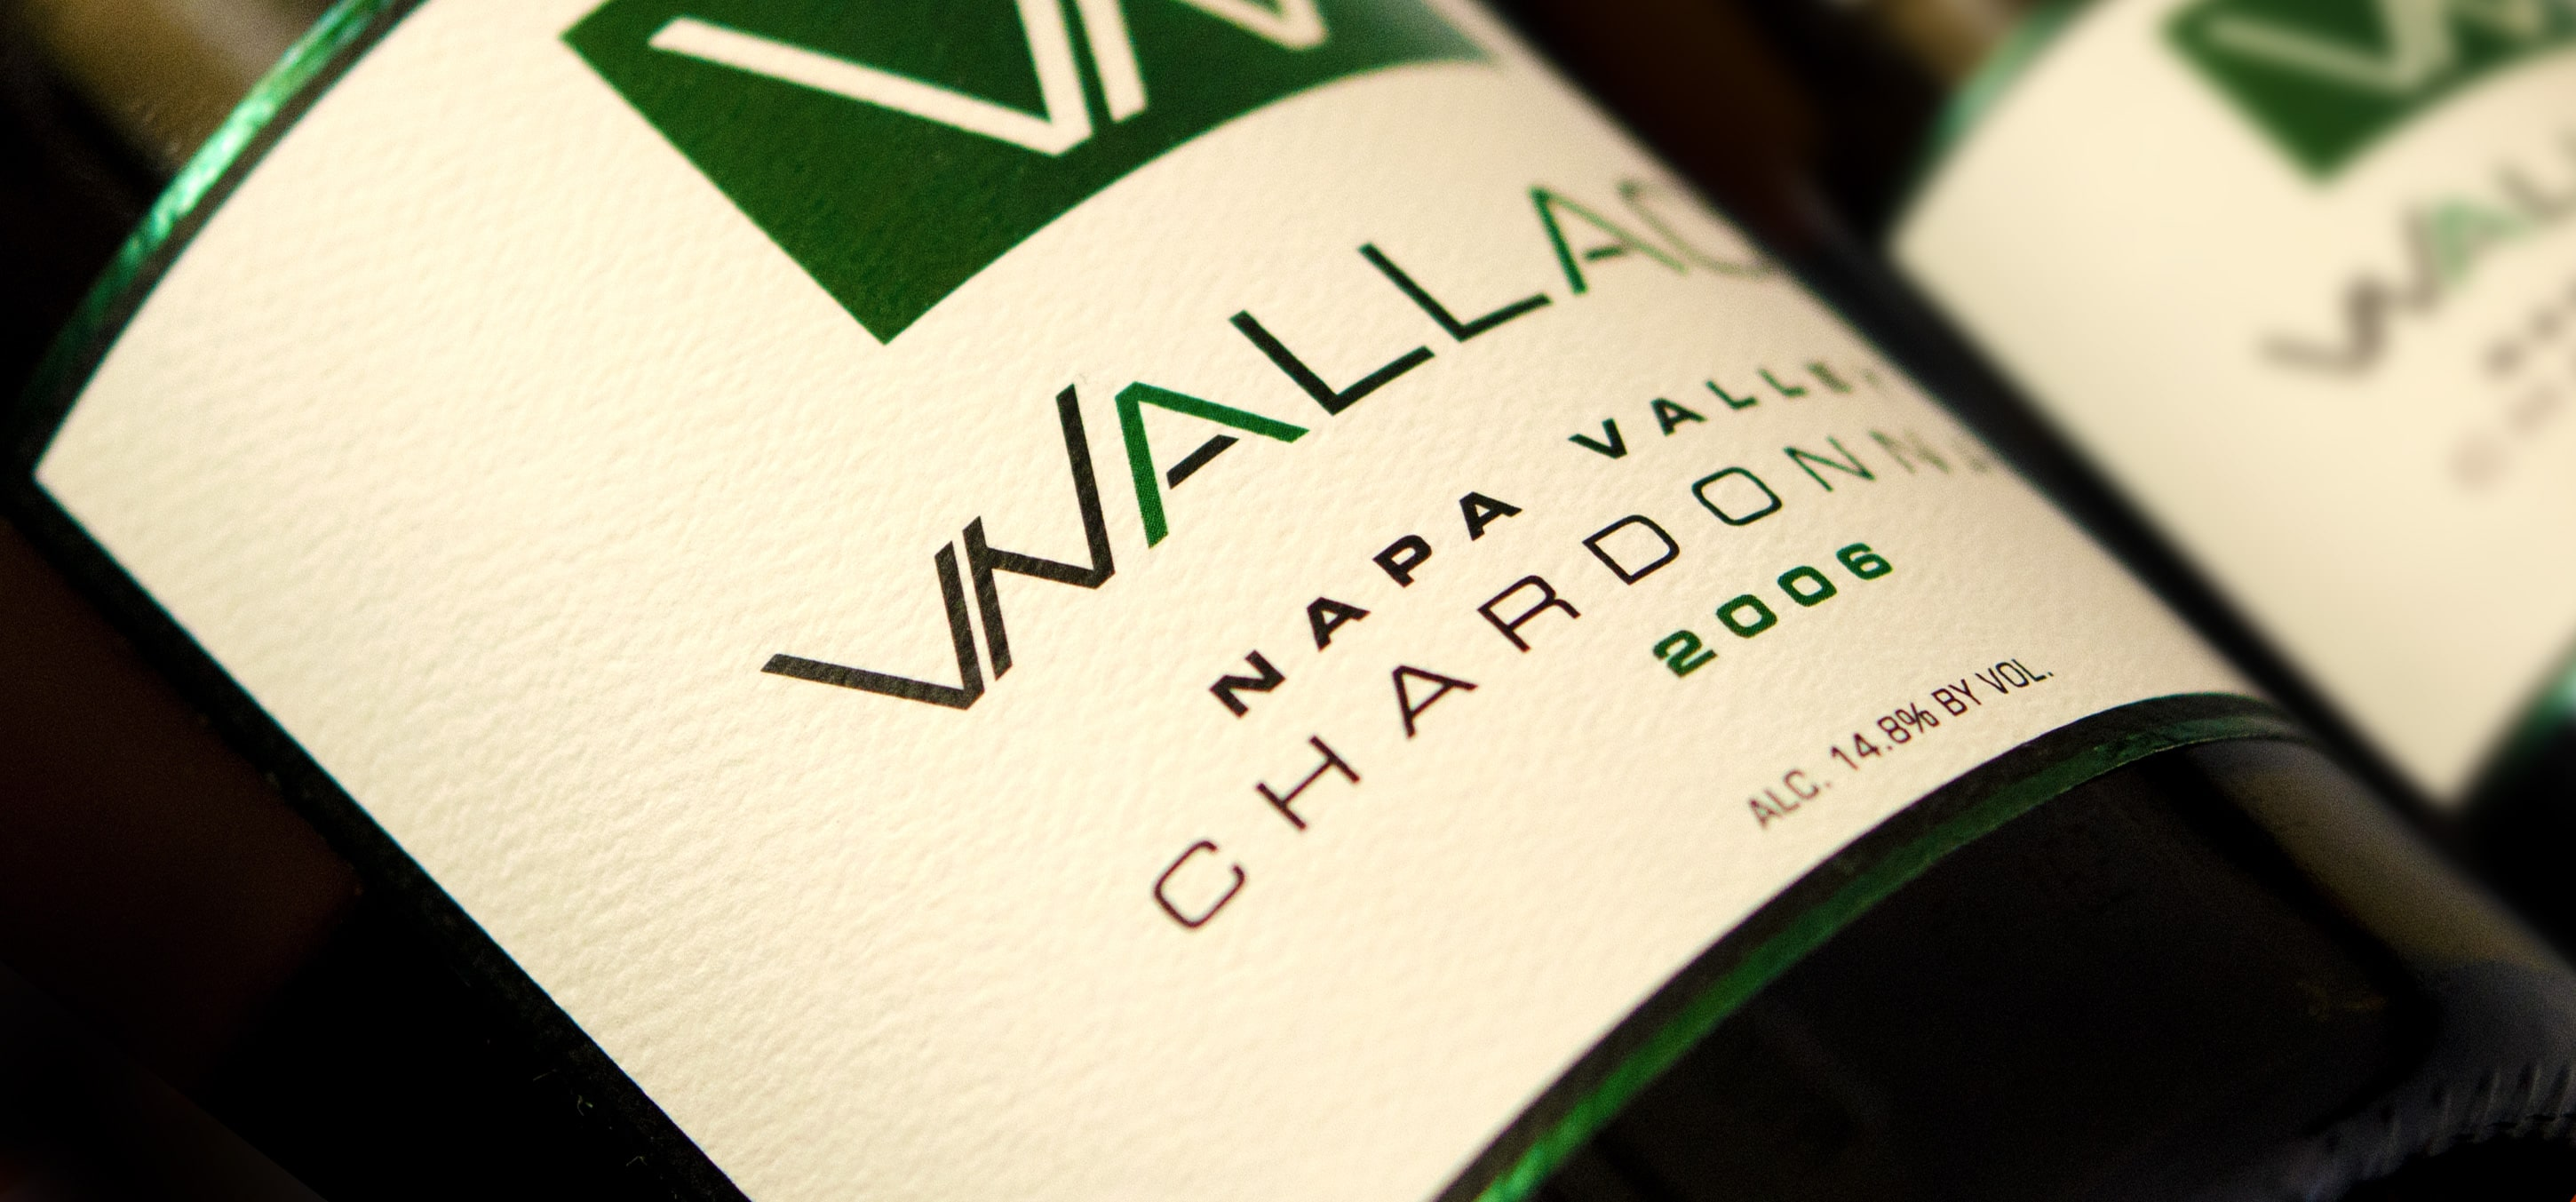 Wallace wine company, Napa valley Chardonny